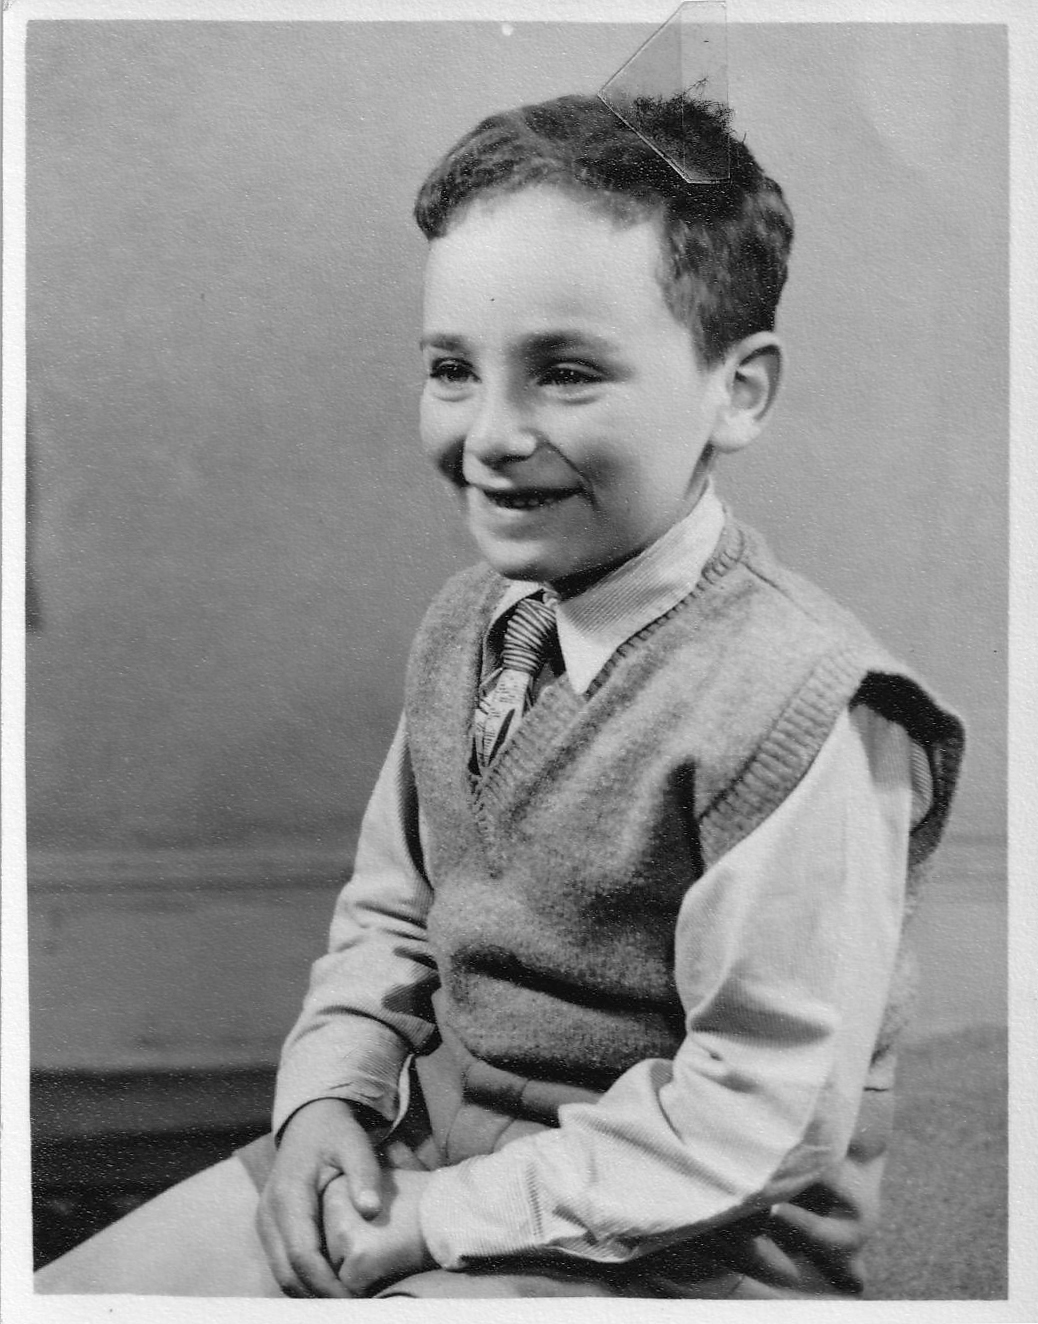 Photograph of Herman Waldmann aged seven years old